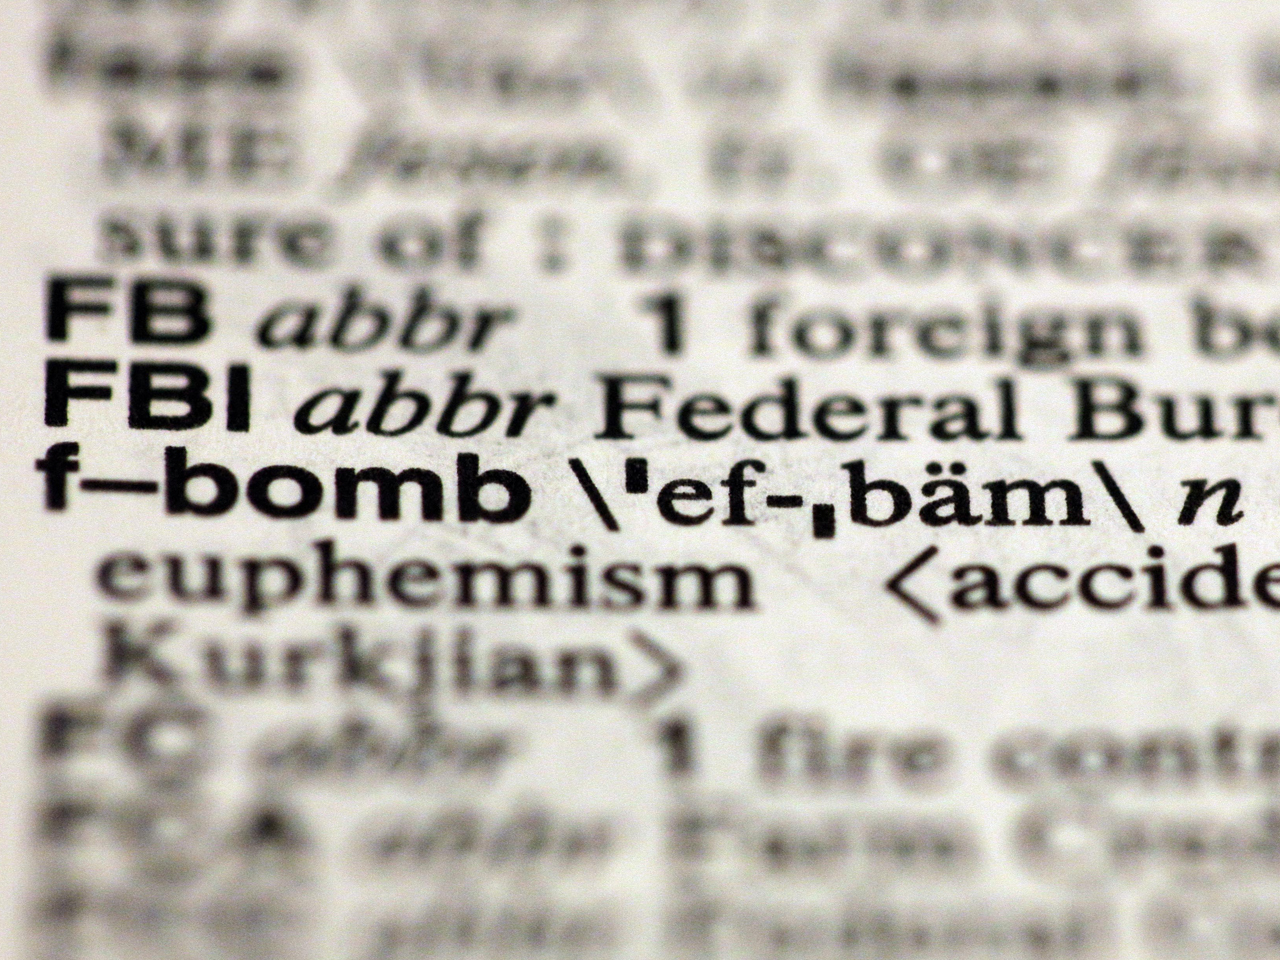 F-Bomb added to Merriam-Webster dictionary along with